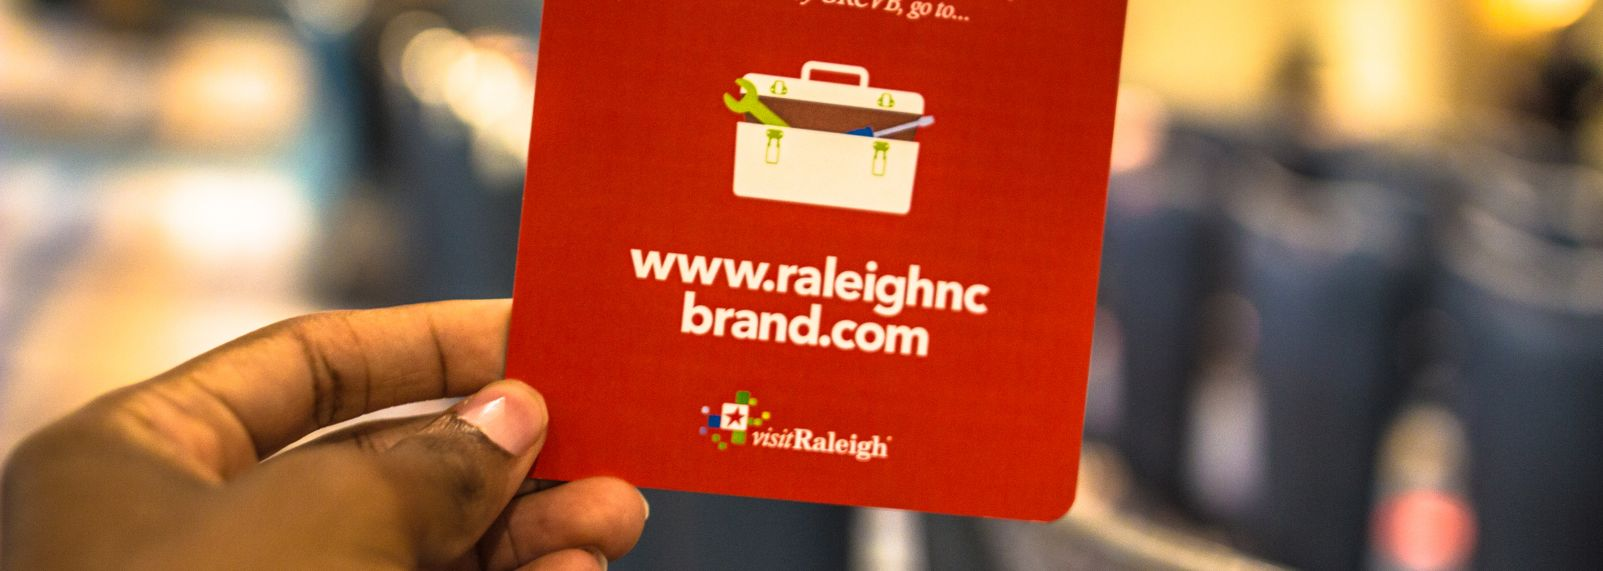 Raleigh north carolina brand kit destination branding malvernweather